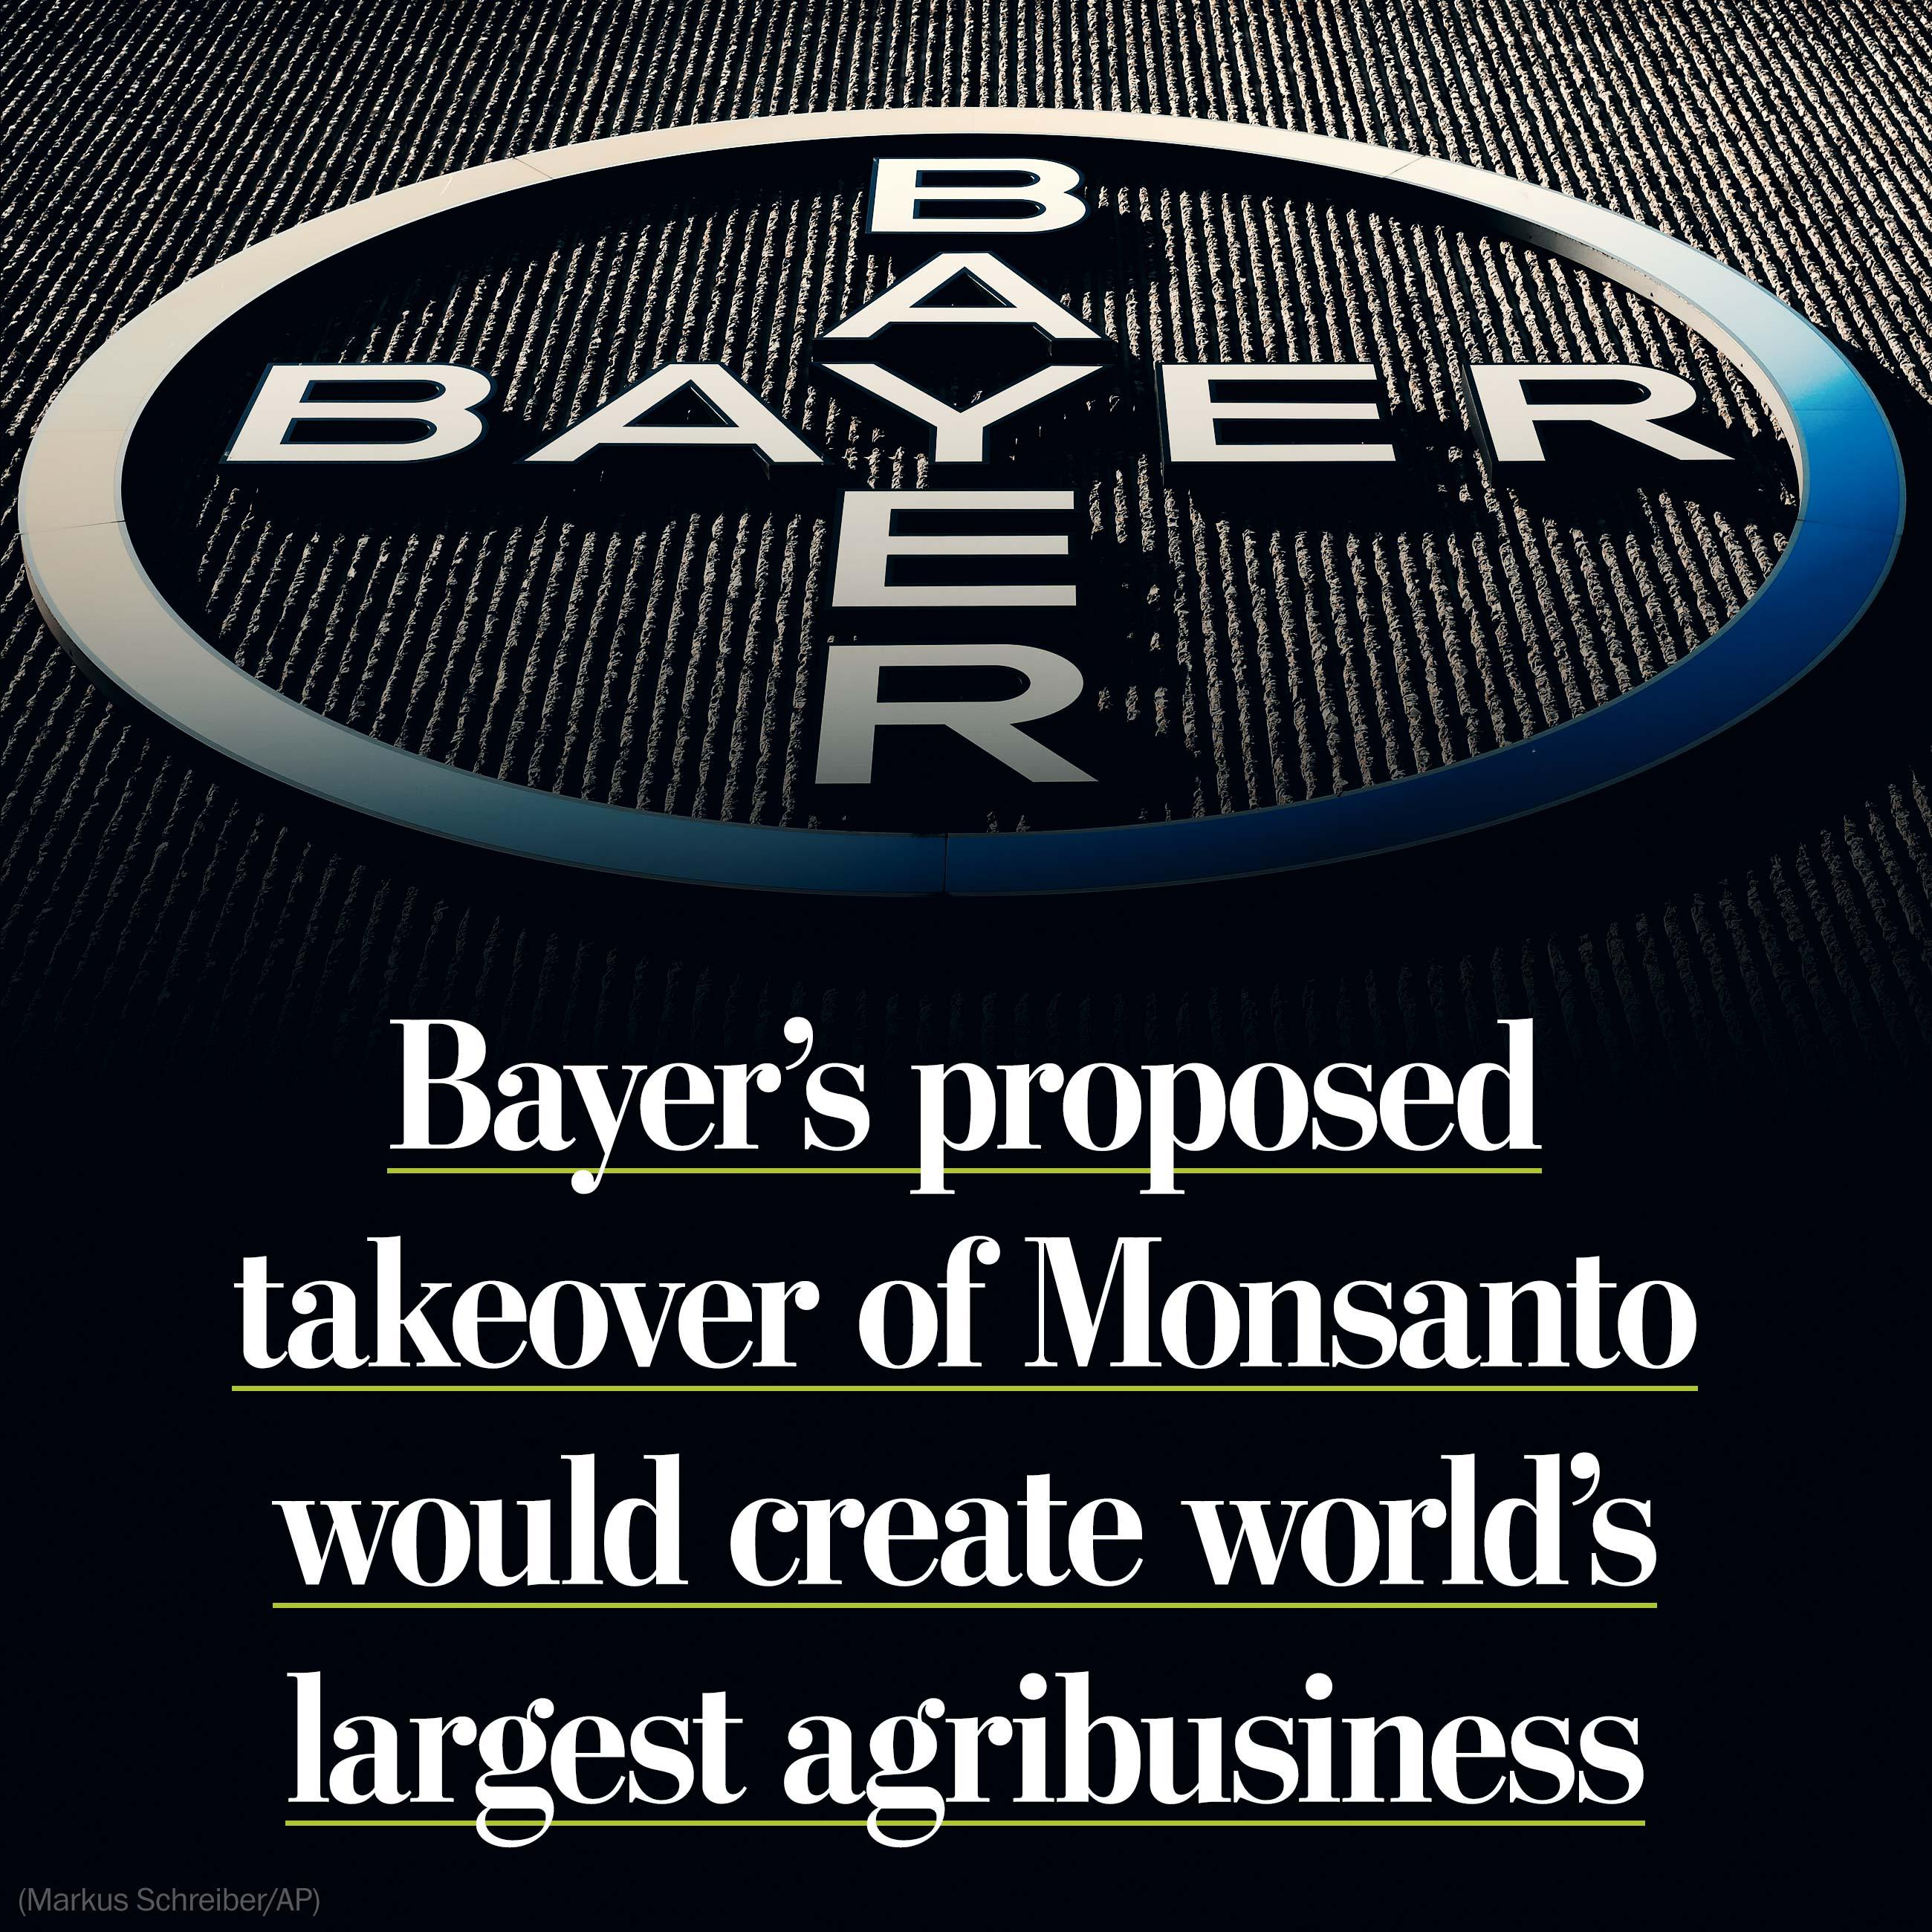 Bayers offers $62 million to buy Monsanto